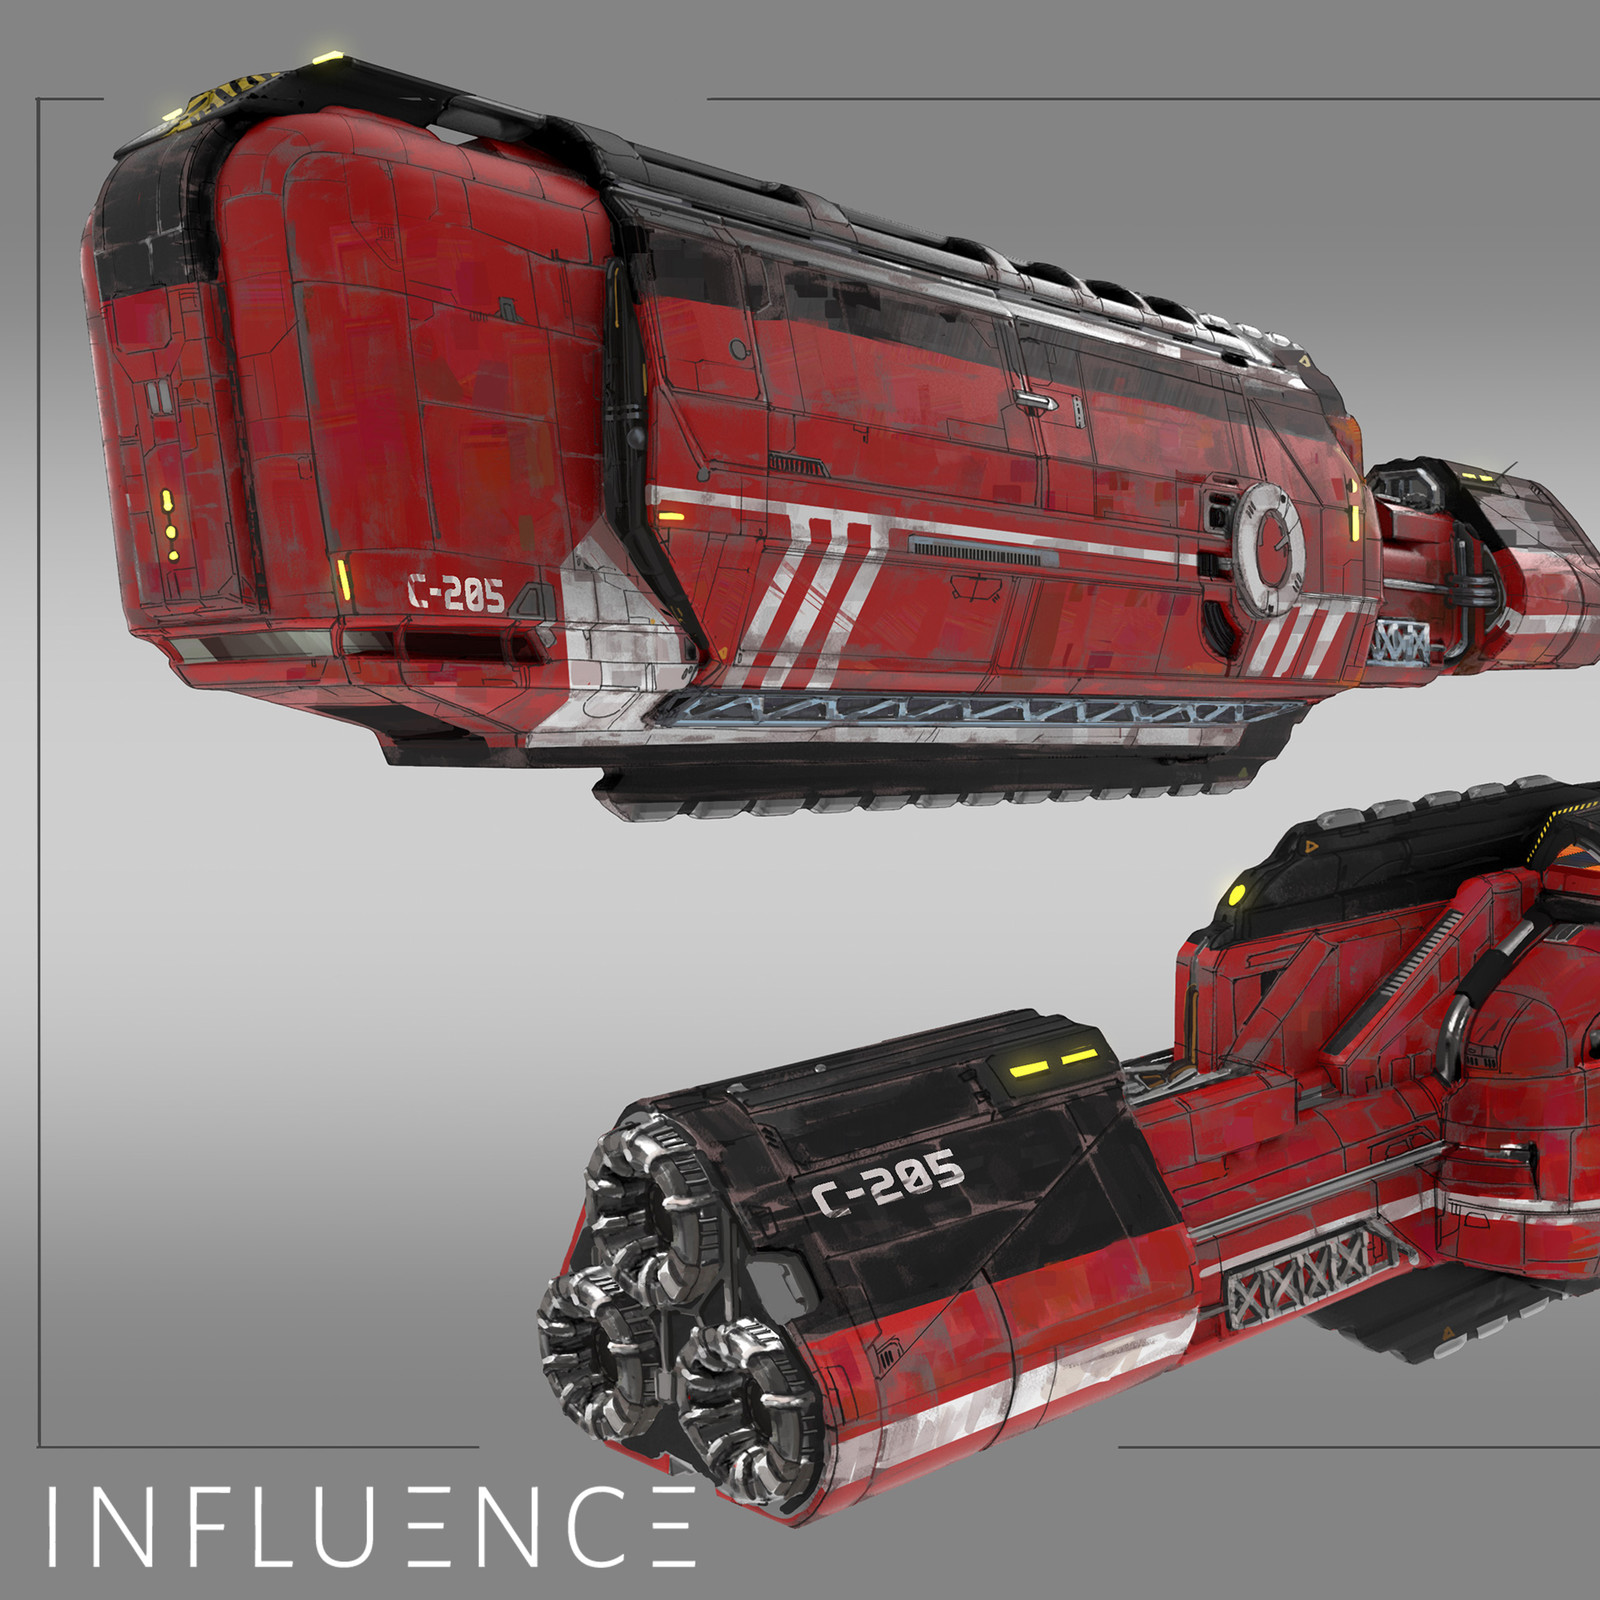 Freighter_Influence